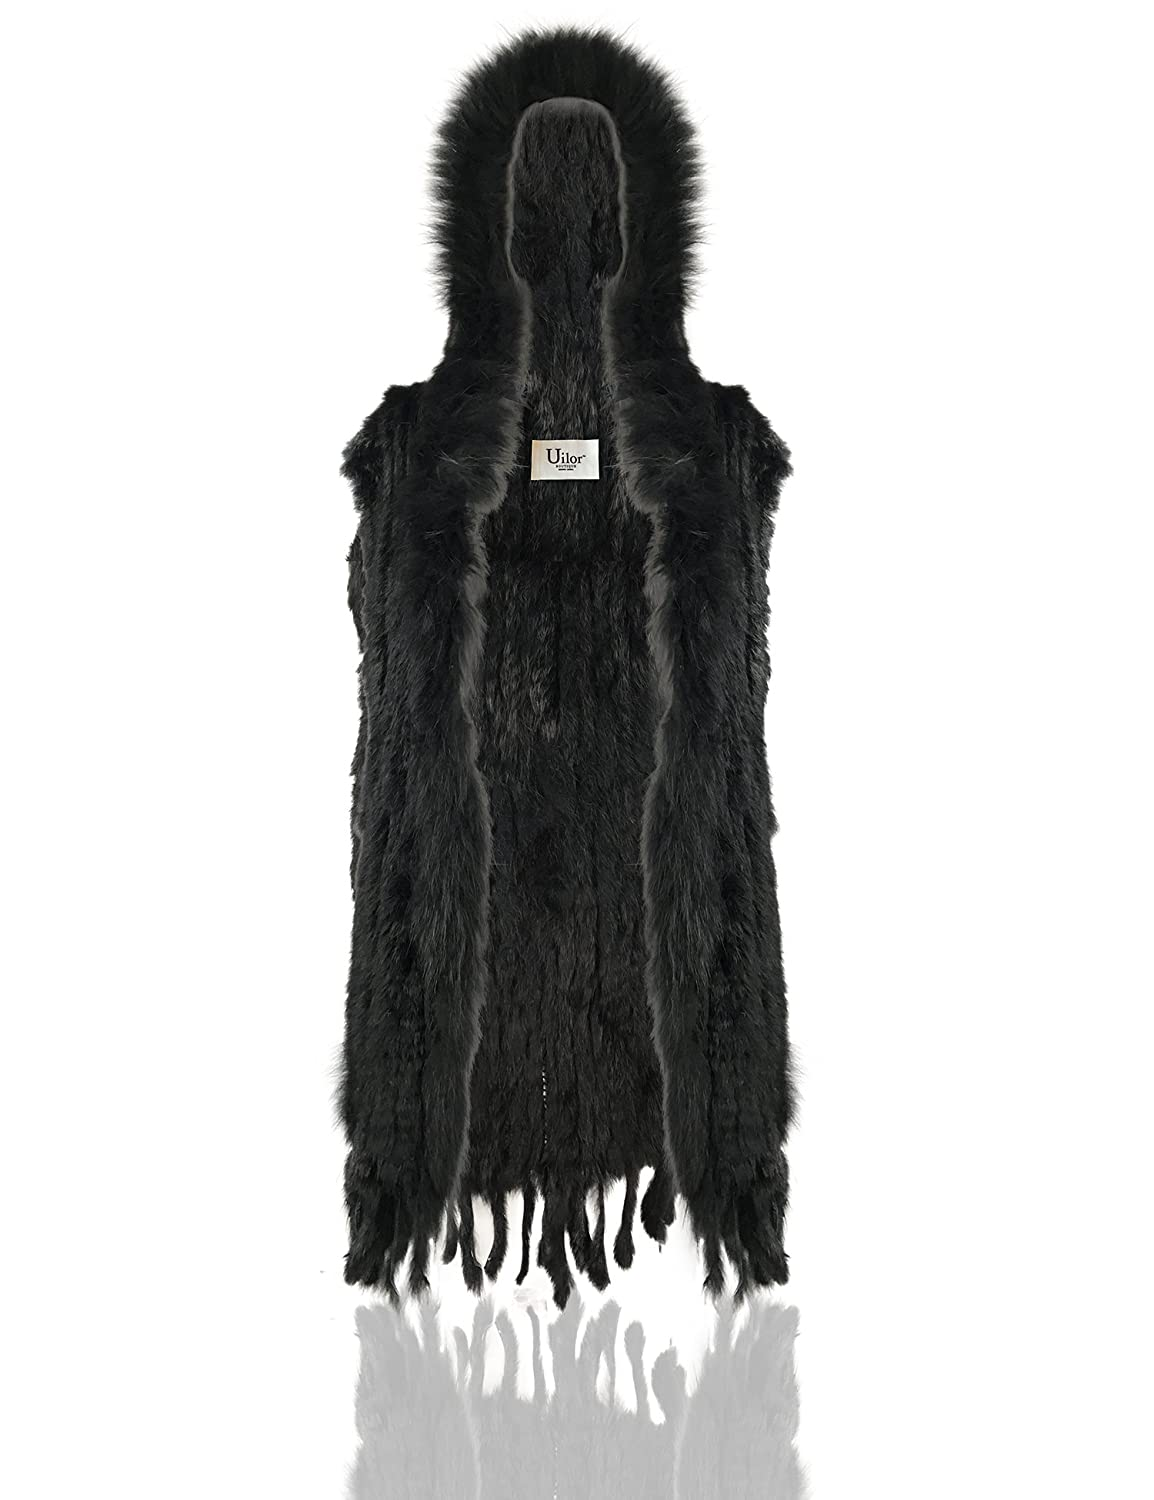 Uilor Women's 100% Natural Knit Rabbit Fur Vest 27018